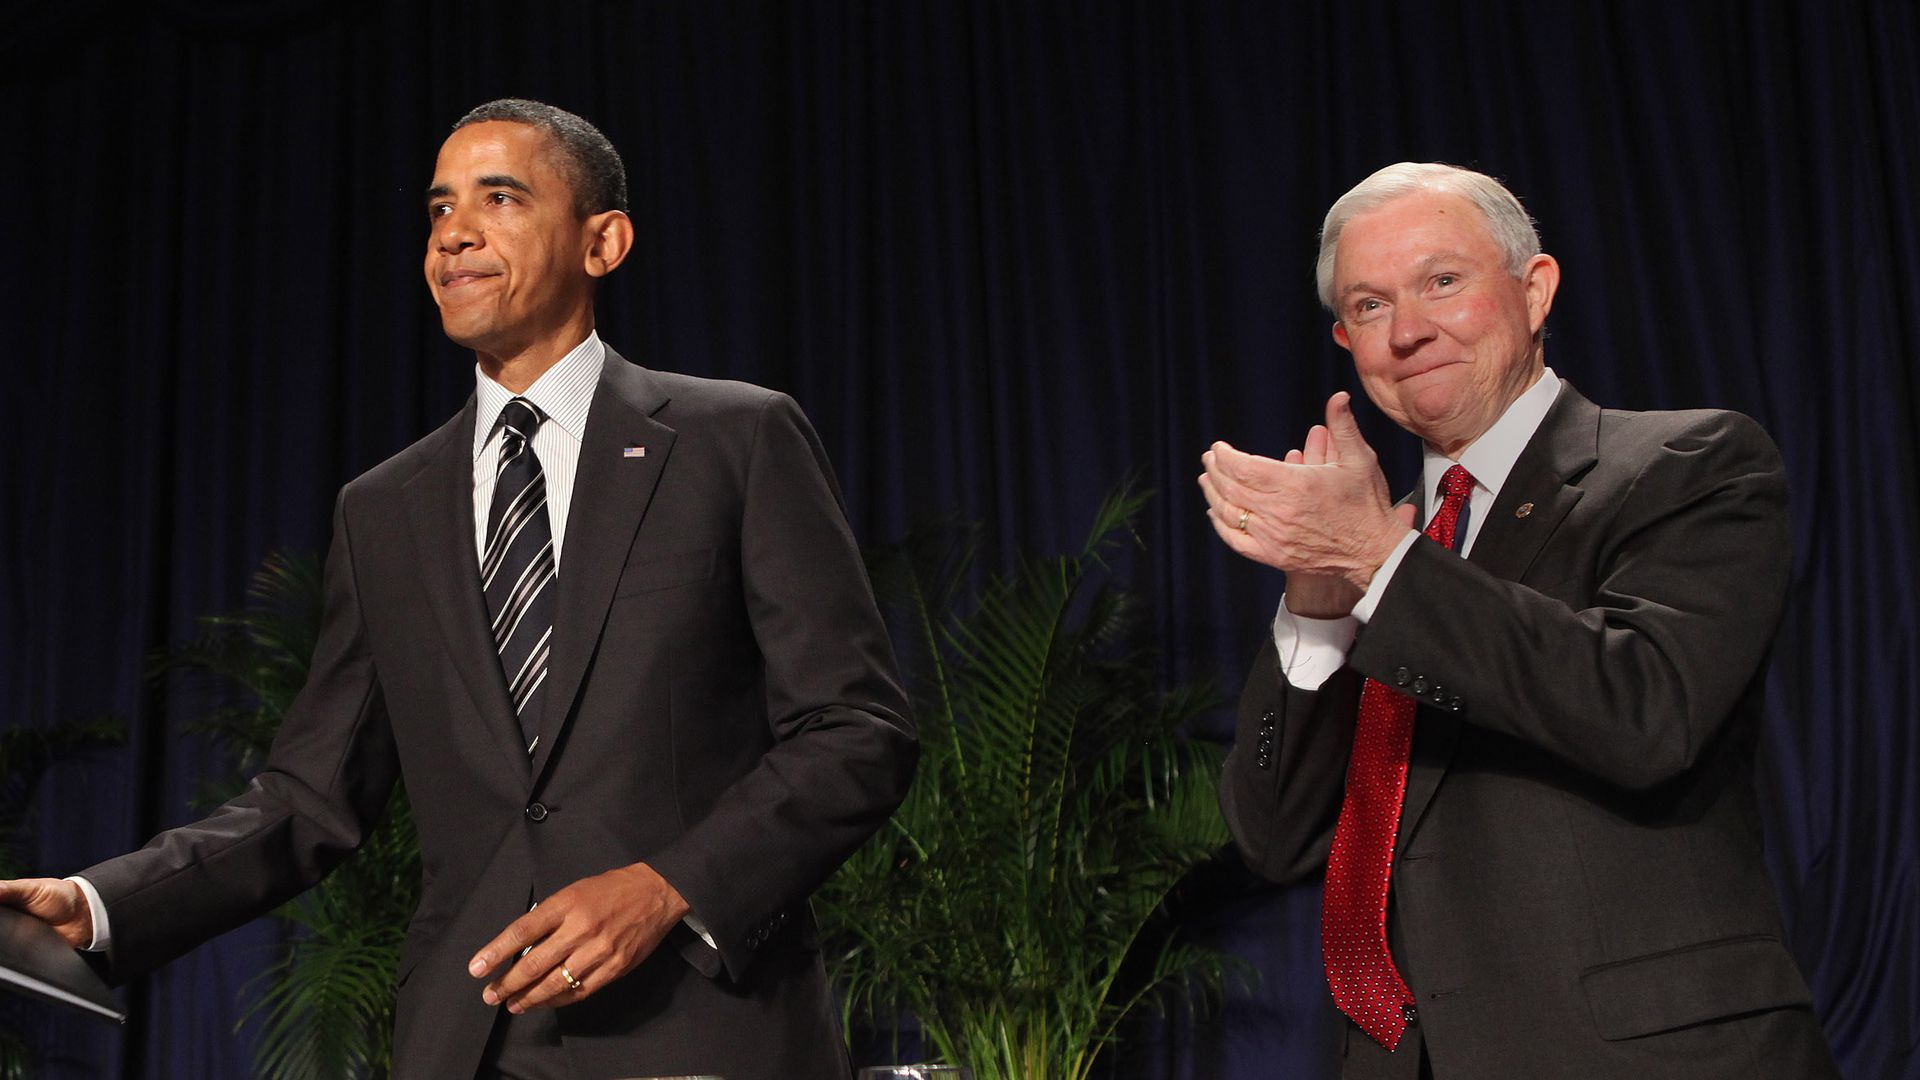 Barack Obama and Jeff Sessions.